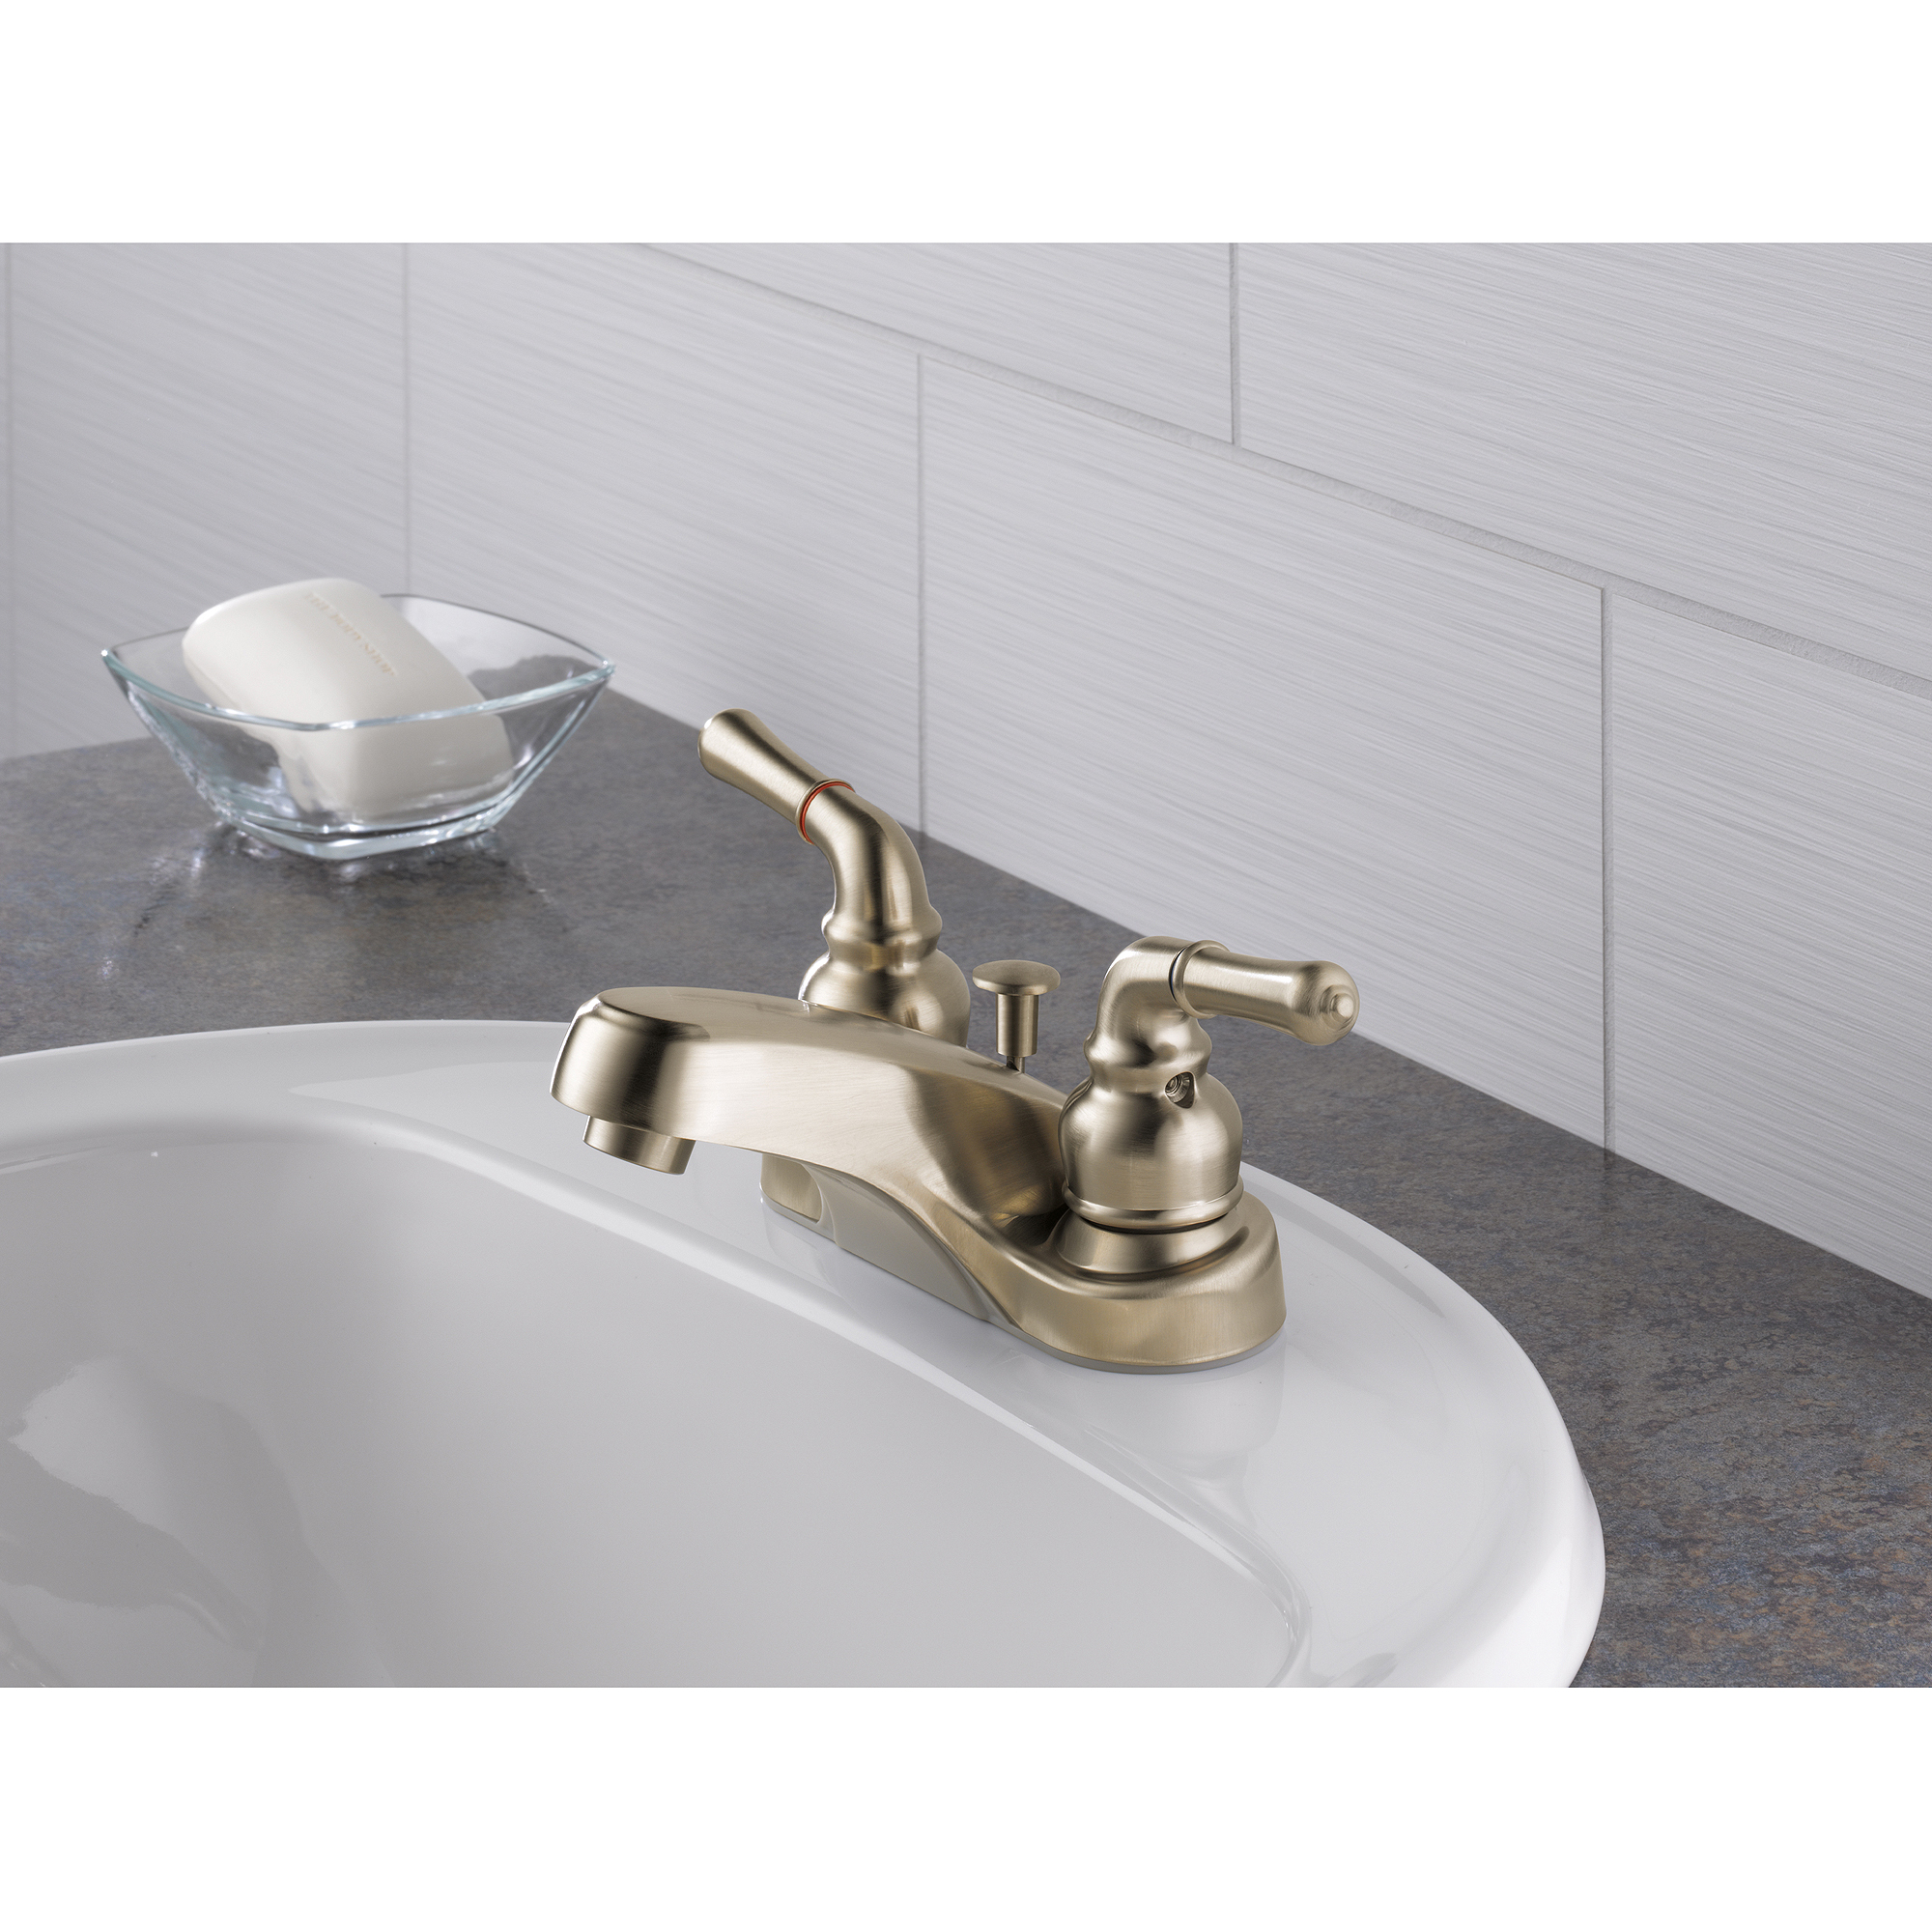 Bathroom Faucets At Walmart peerless brushed nickel 2 hndle bath faucet - walmart